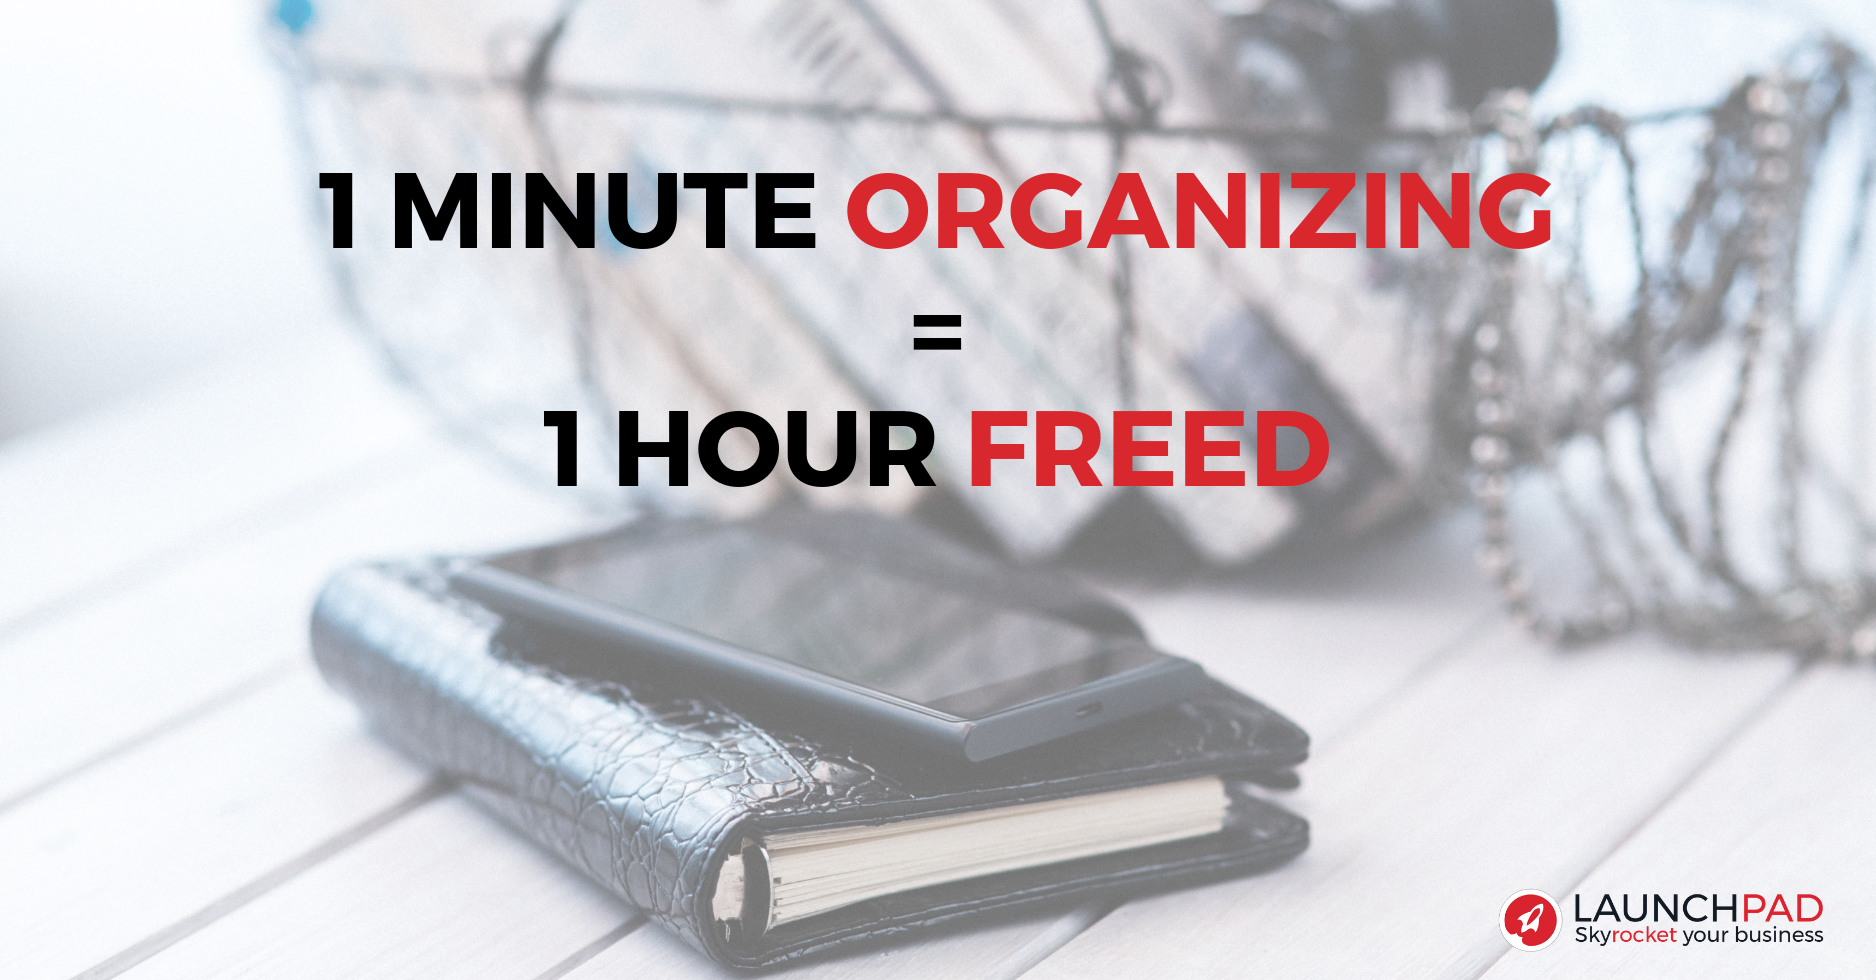 1 Minute Organizing = 1 hour freed